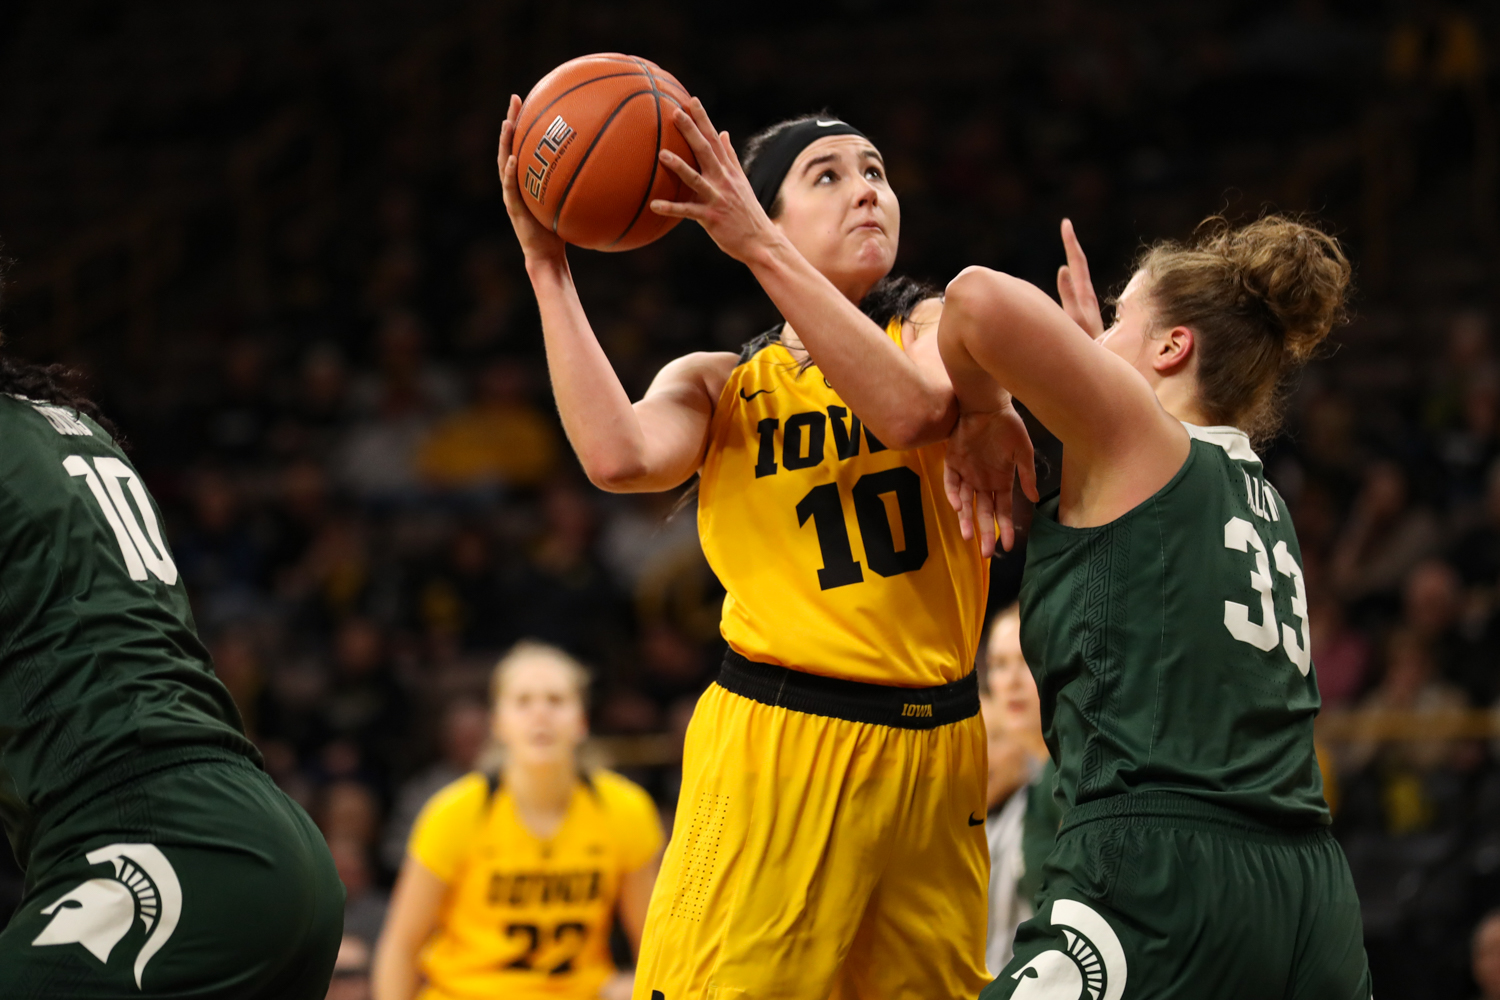 Iowa forward Megan Gustafson (10) looks for a shot during a basketball game against Michigan State on Thursday, Feb. 7, 2019. The Hawkeyes defeated the Spartans 86-71.